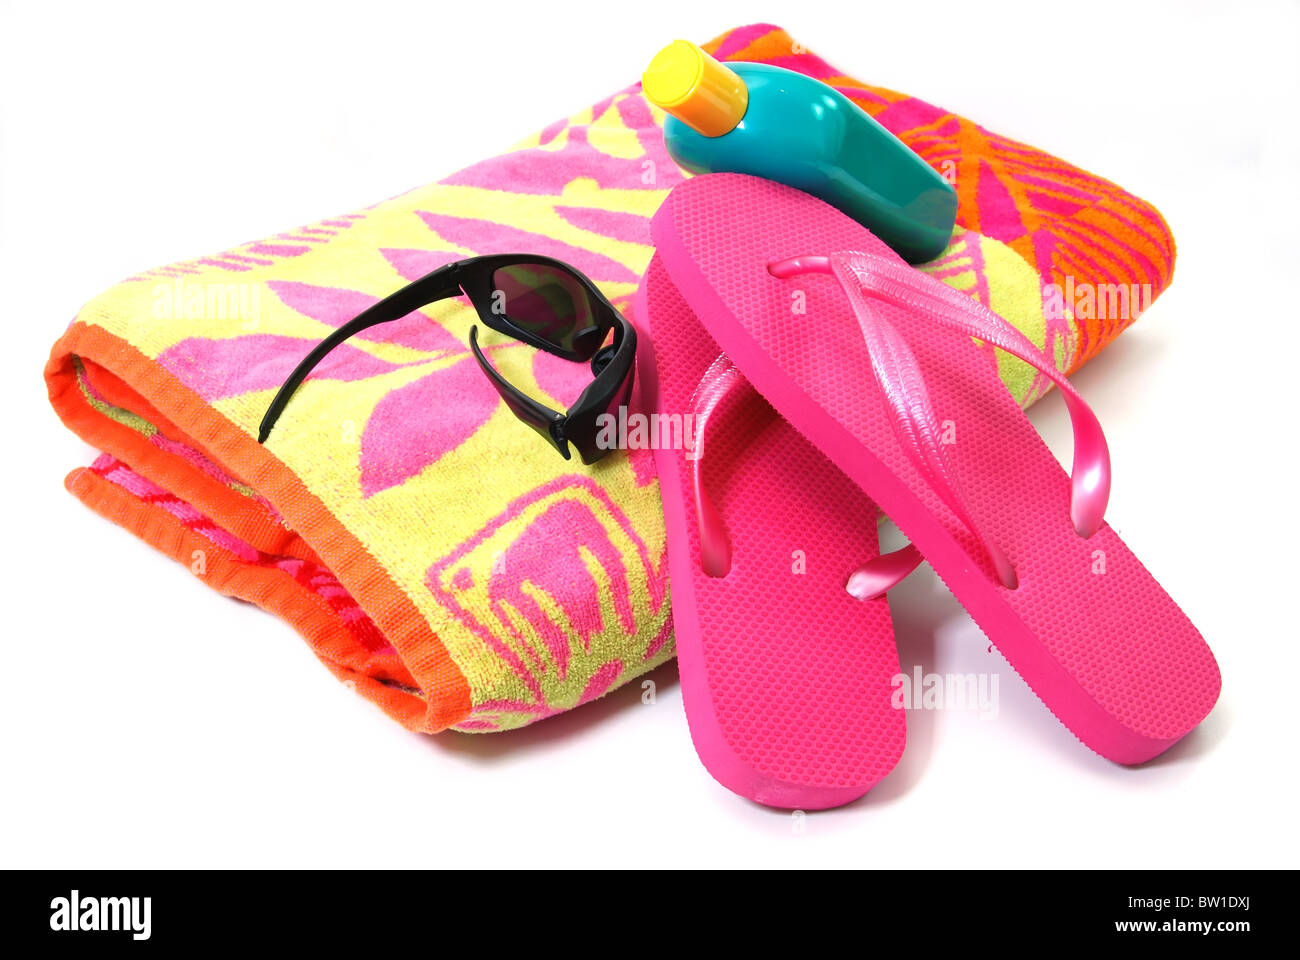 610b772a779d7a Beach towel, flip flops, sunglasses, and sunscreen isolated on white  background. -